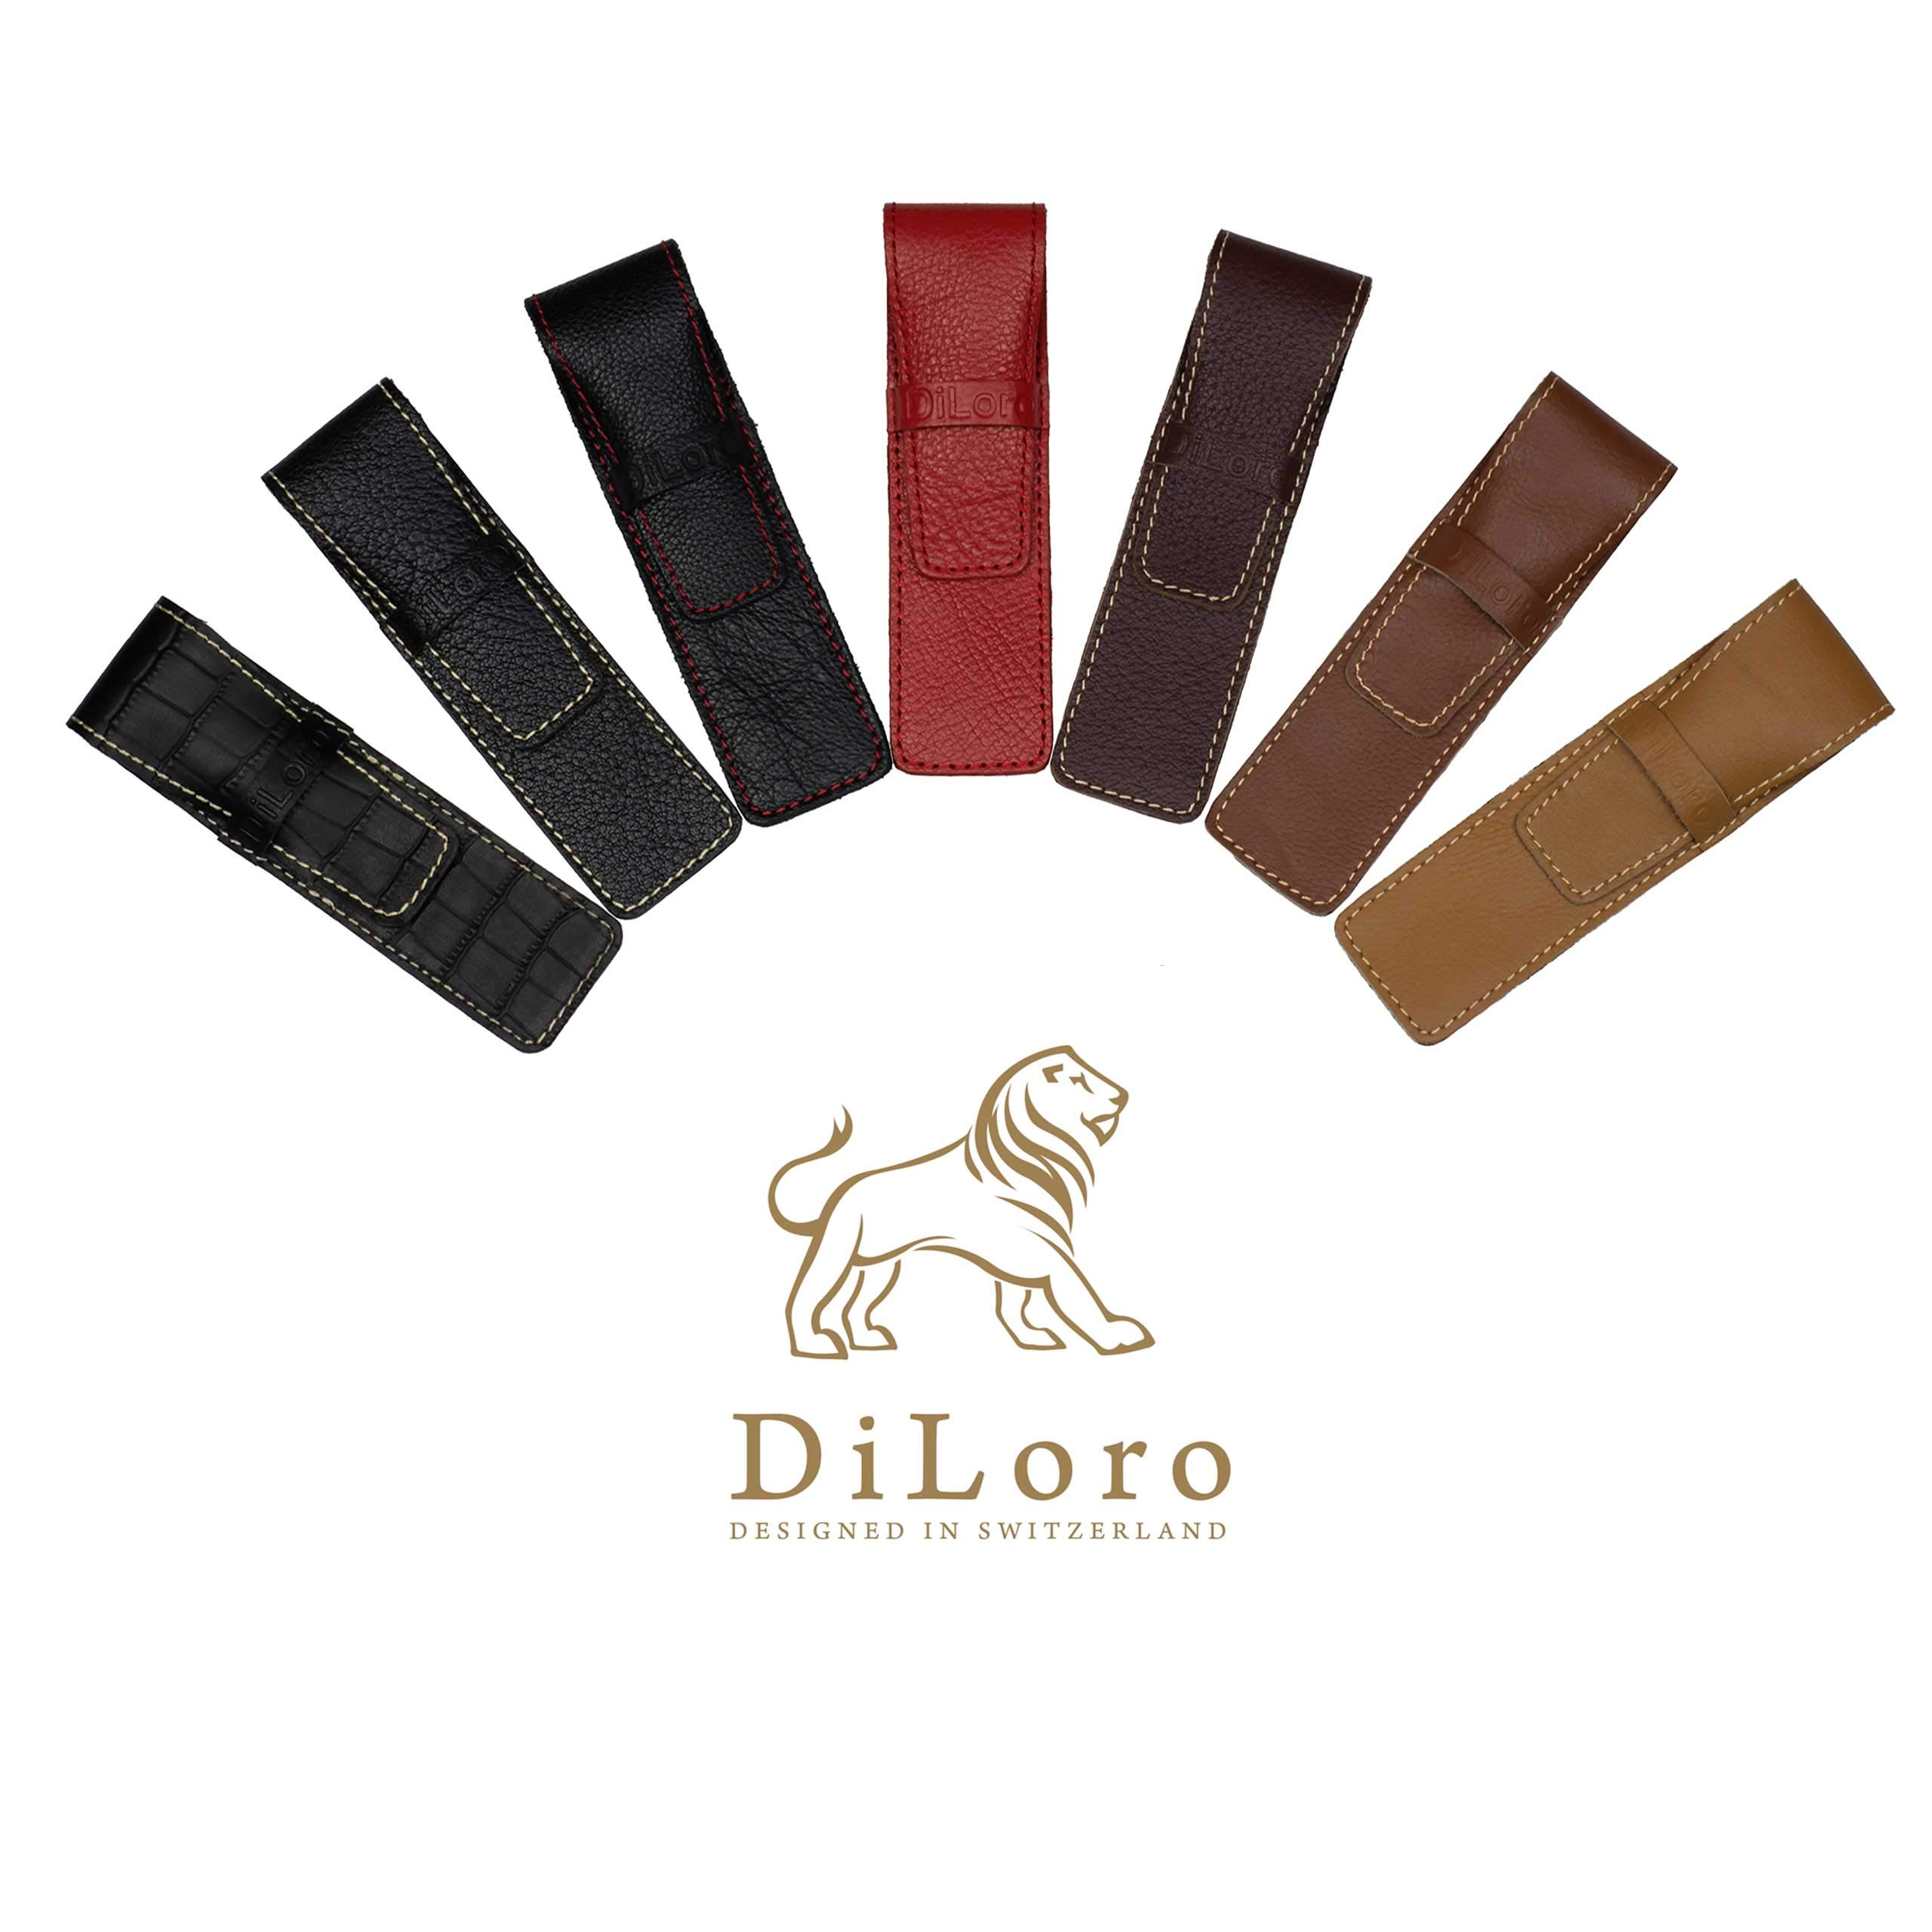 DiLoro Full Grain Top Quality Thick Buffalo Italian Leather Single Pen Case Holder Pouch Black by DiLoro